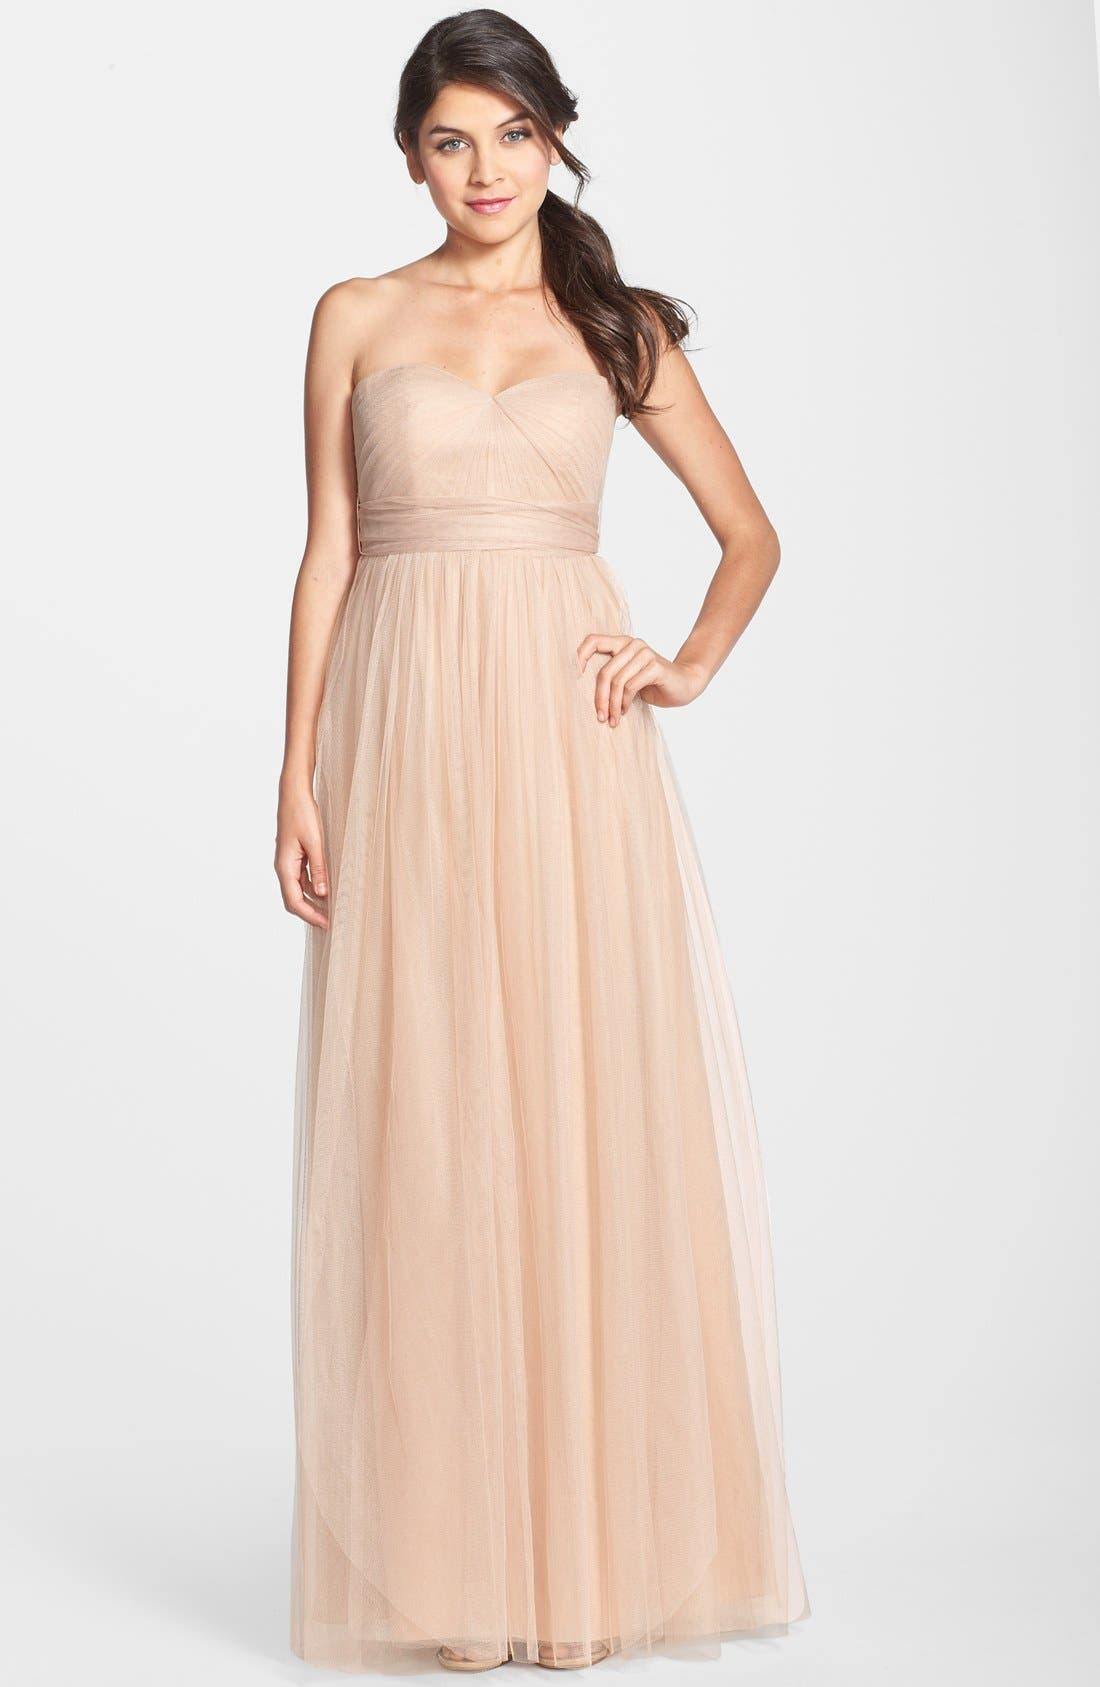 Annabelle Convertible Tulle Column Dress,                             Main thumbnail 19, color,